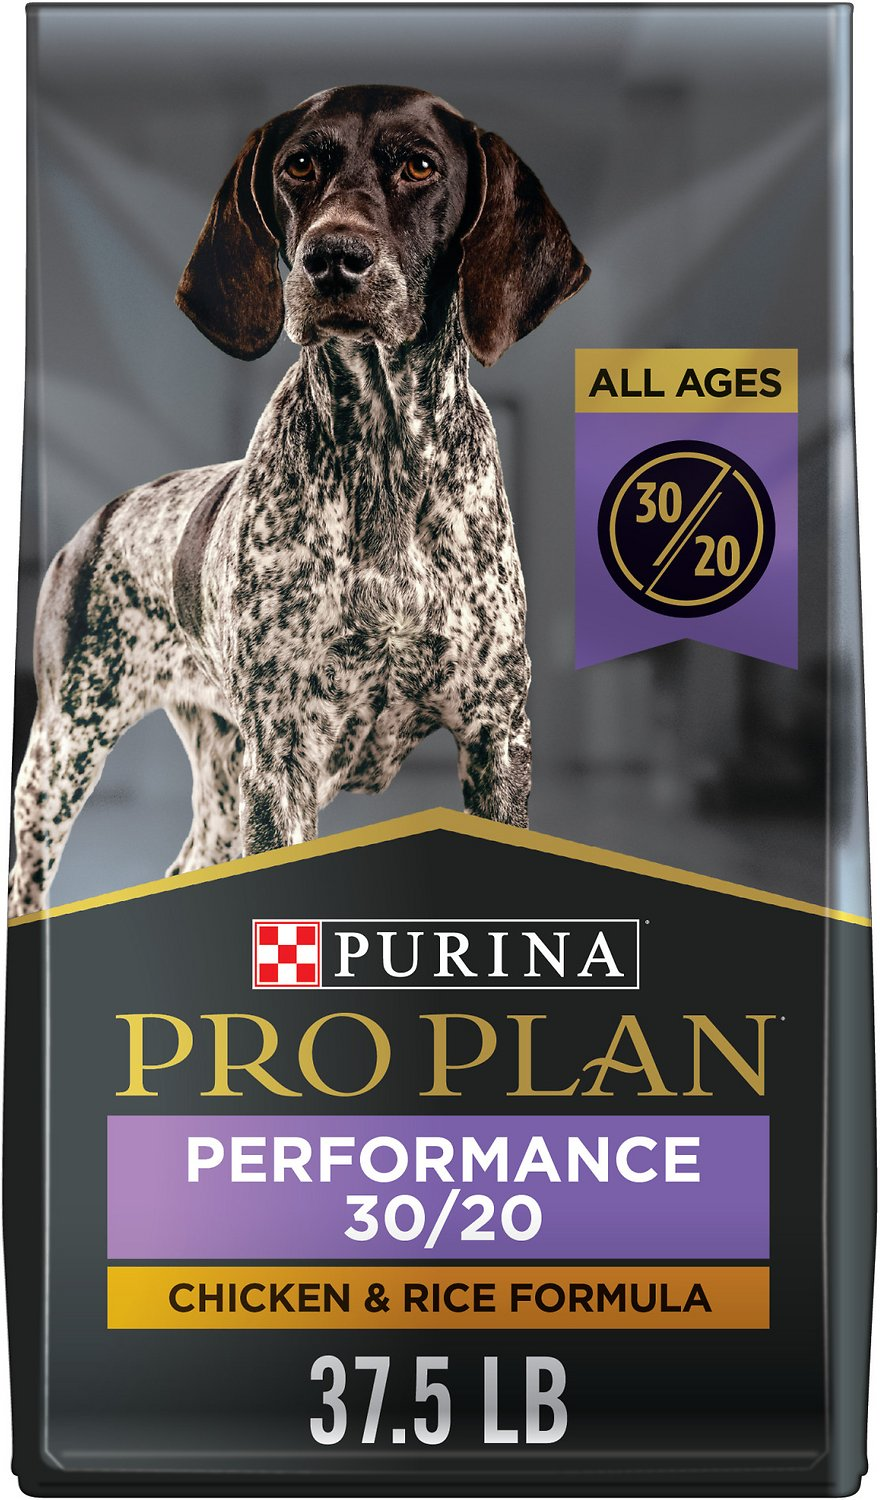 Purina Sport Dog Food Reviews